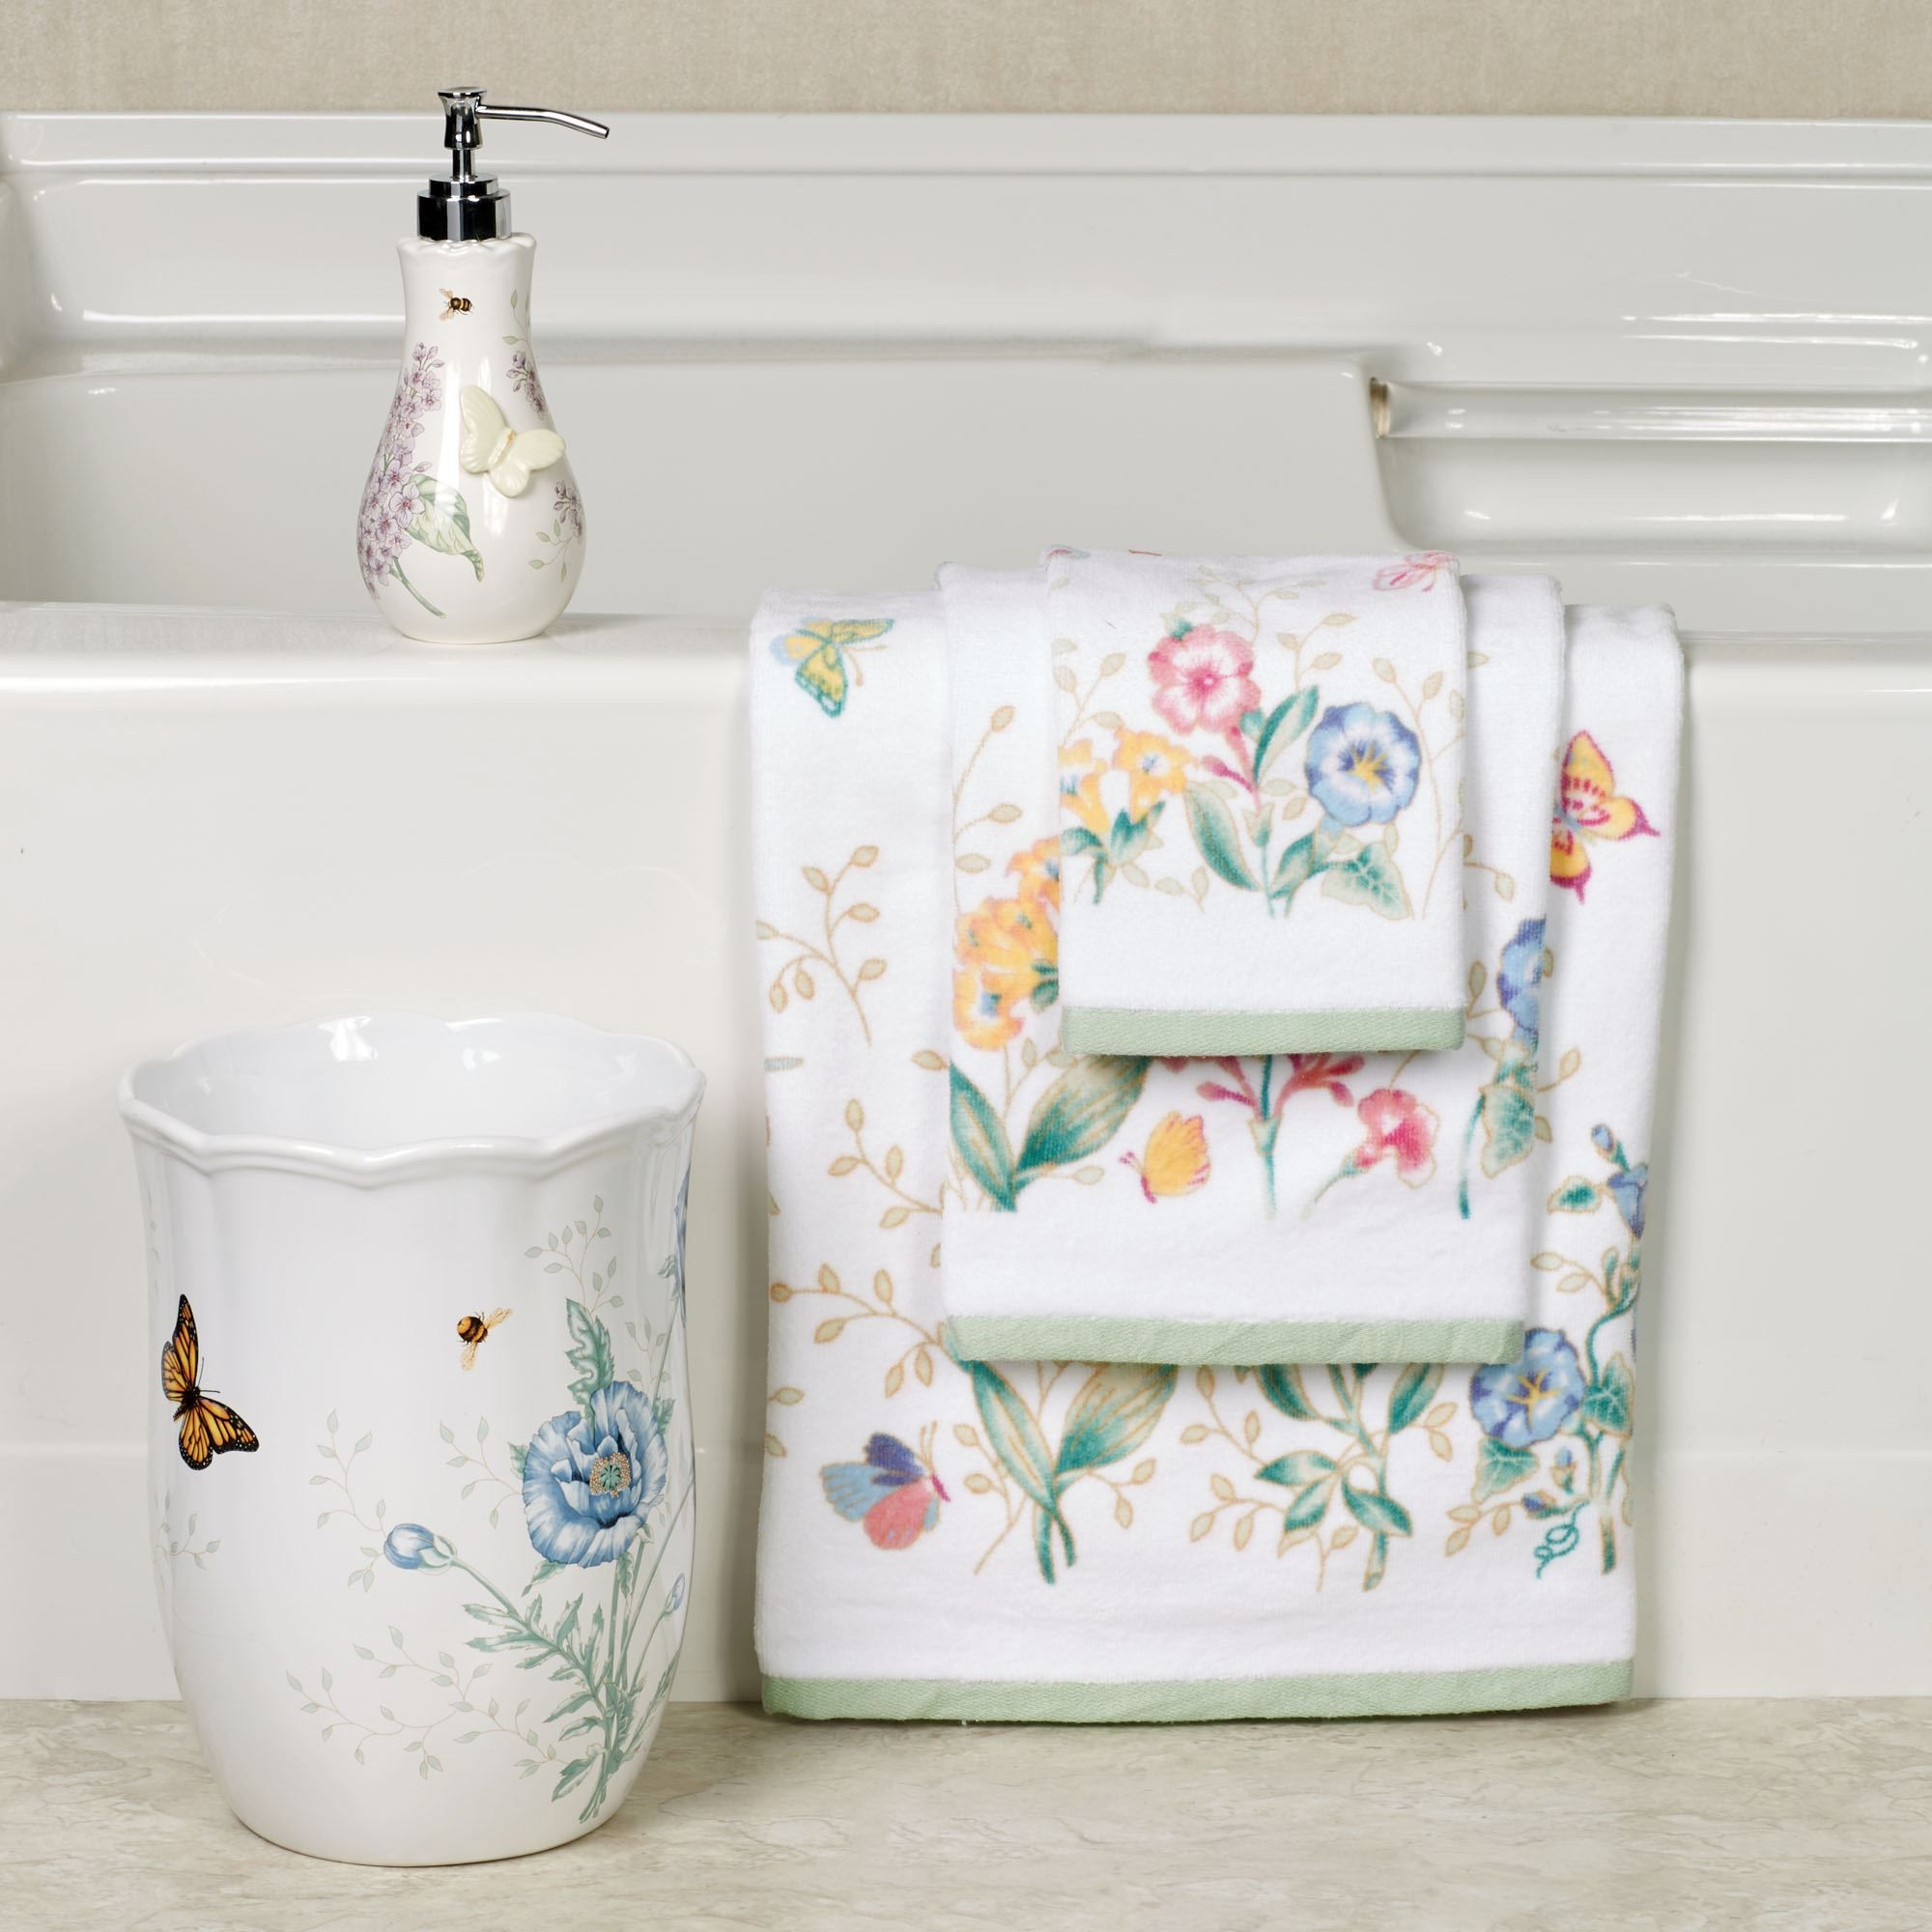 Lenox Butterfly Meadow Bath Towel Set Lenox Butterfly Meadow